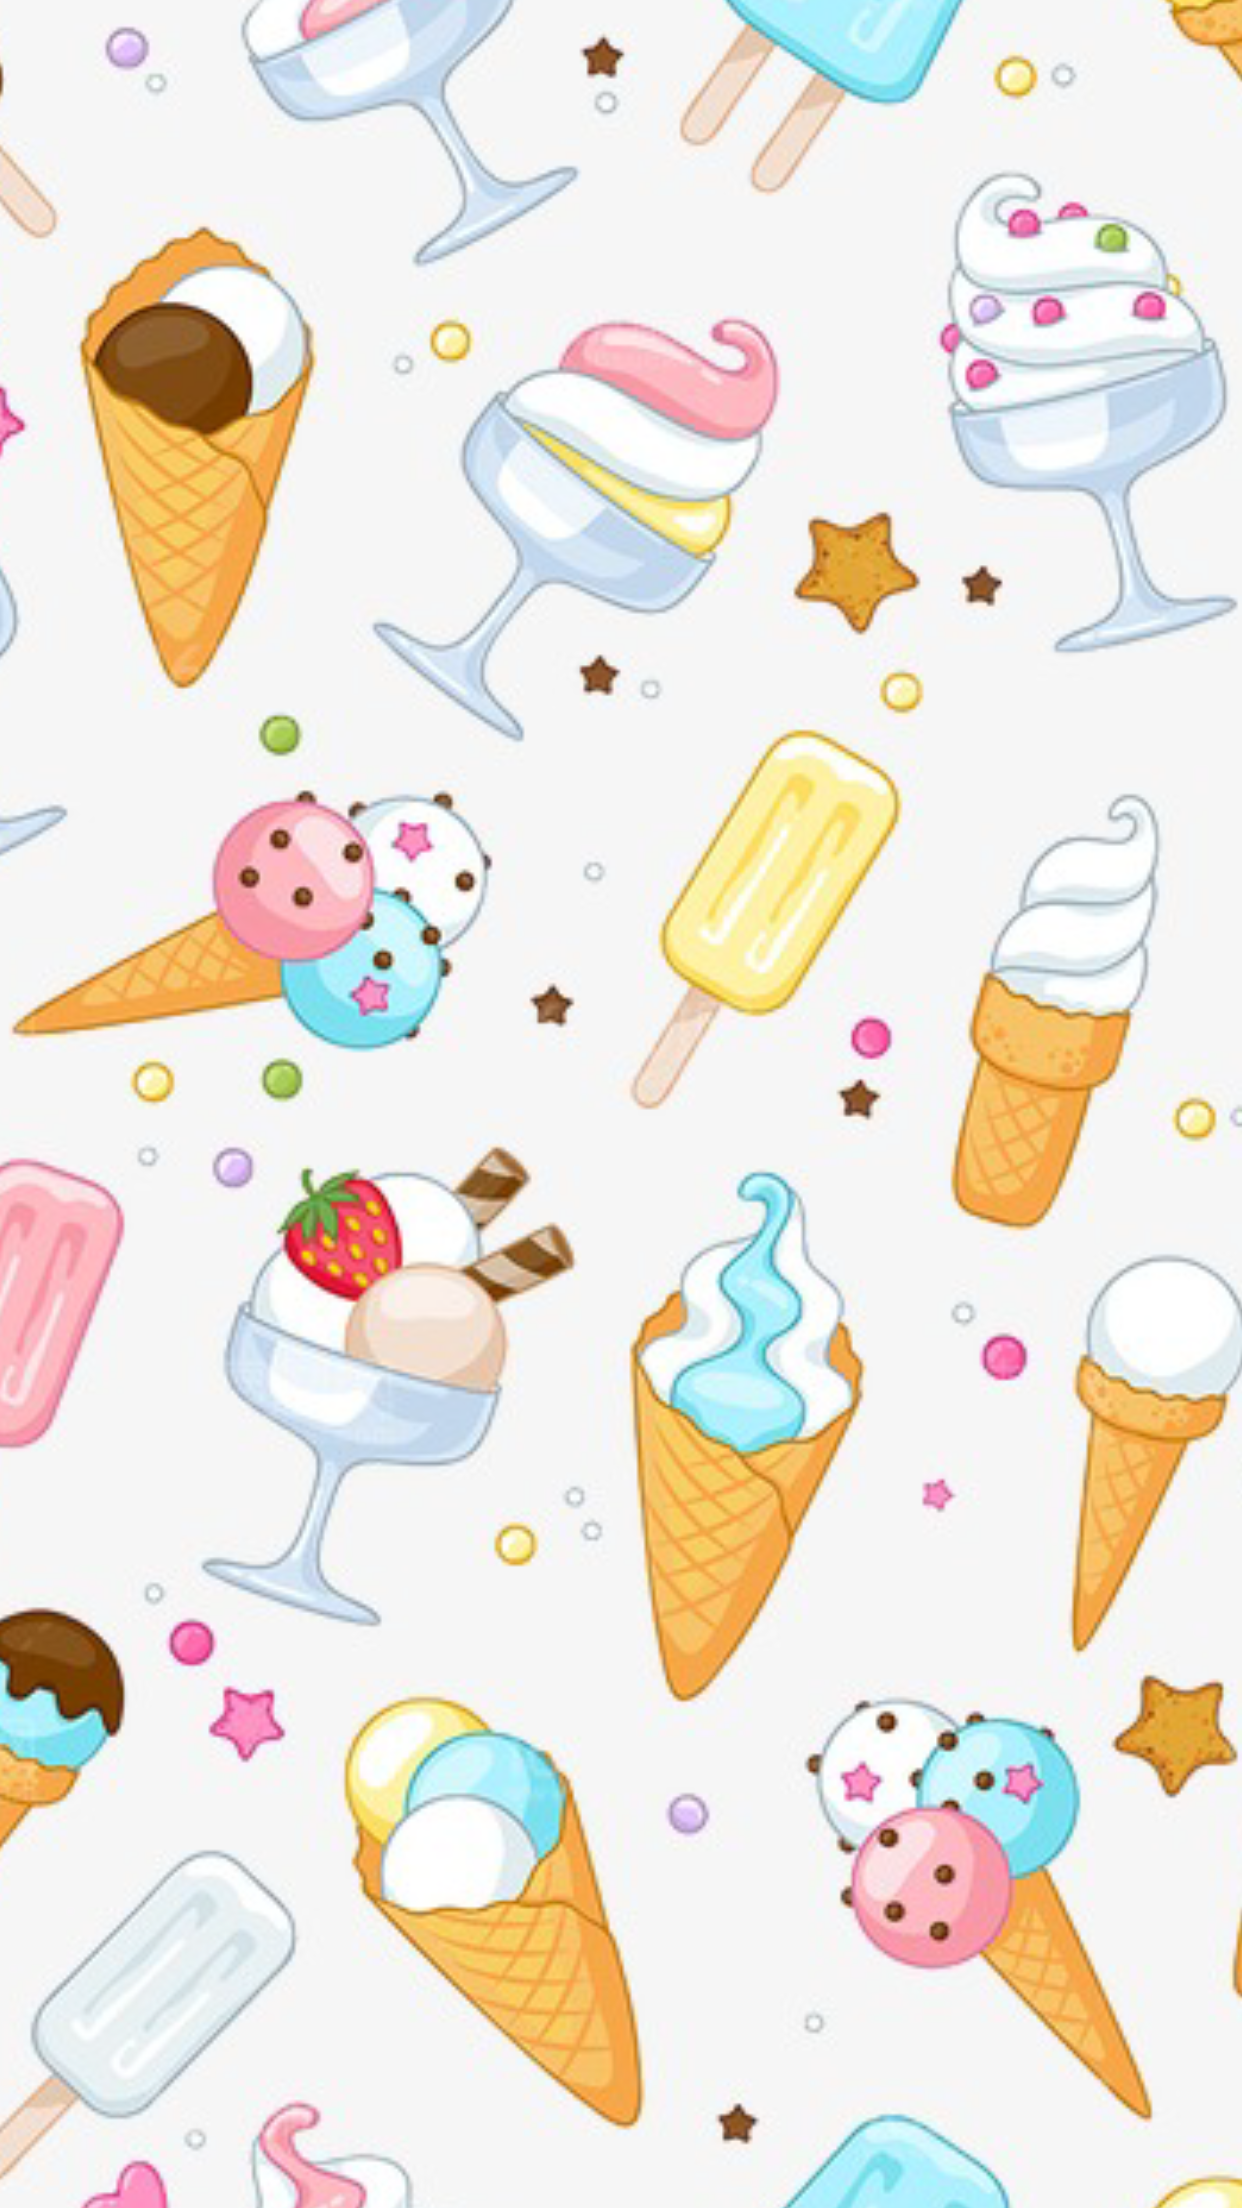 Pin by Tina Liroff on Cute wallpapers in 2019.